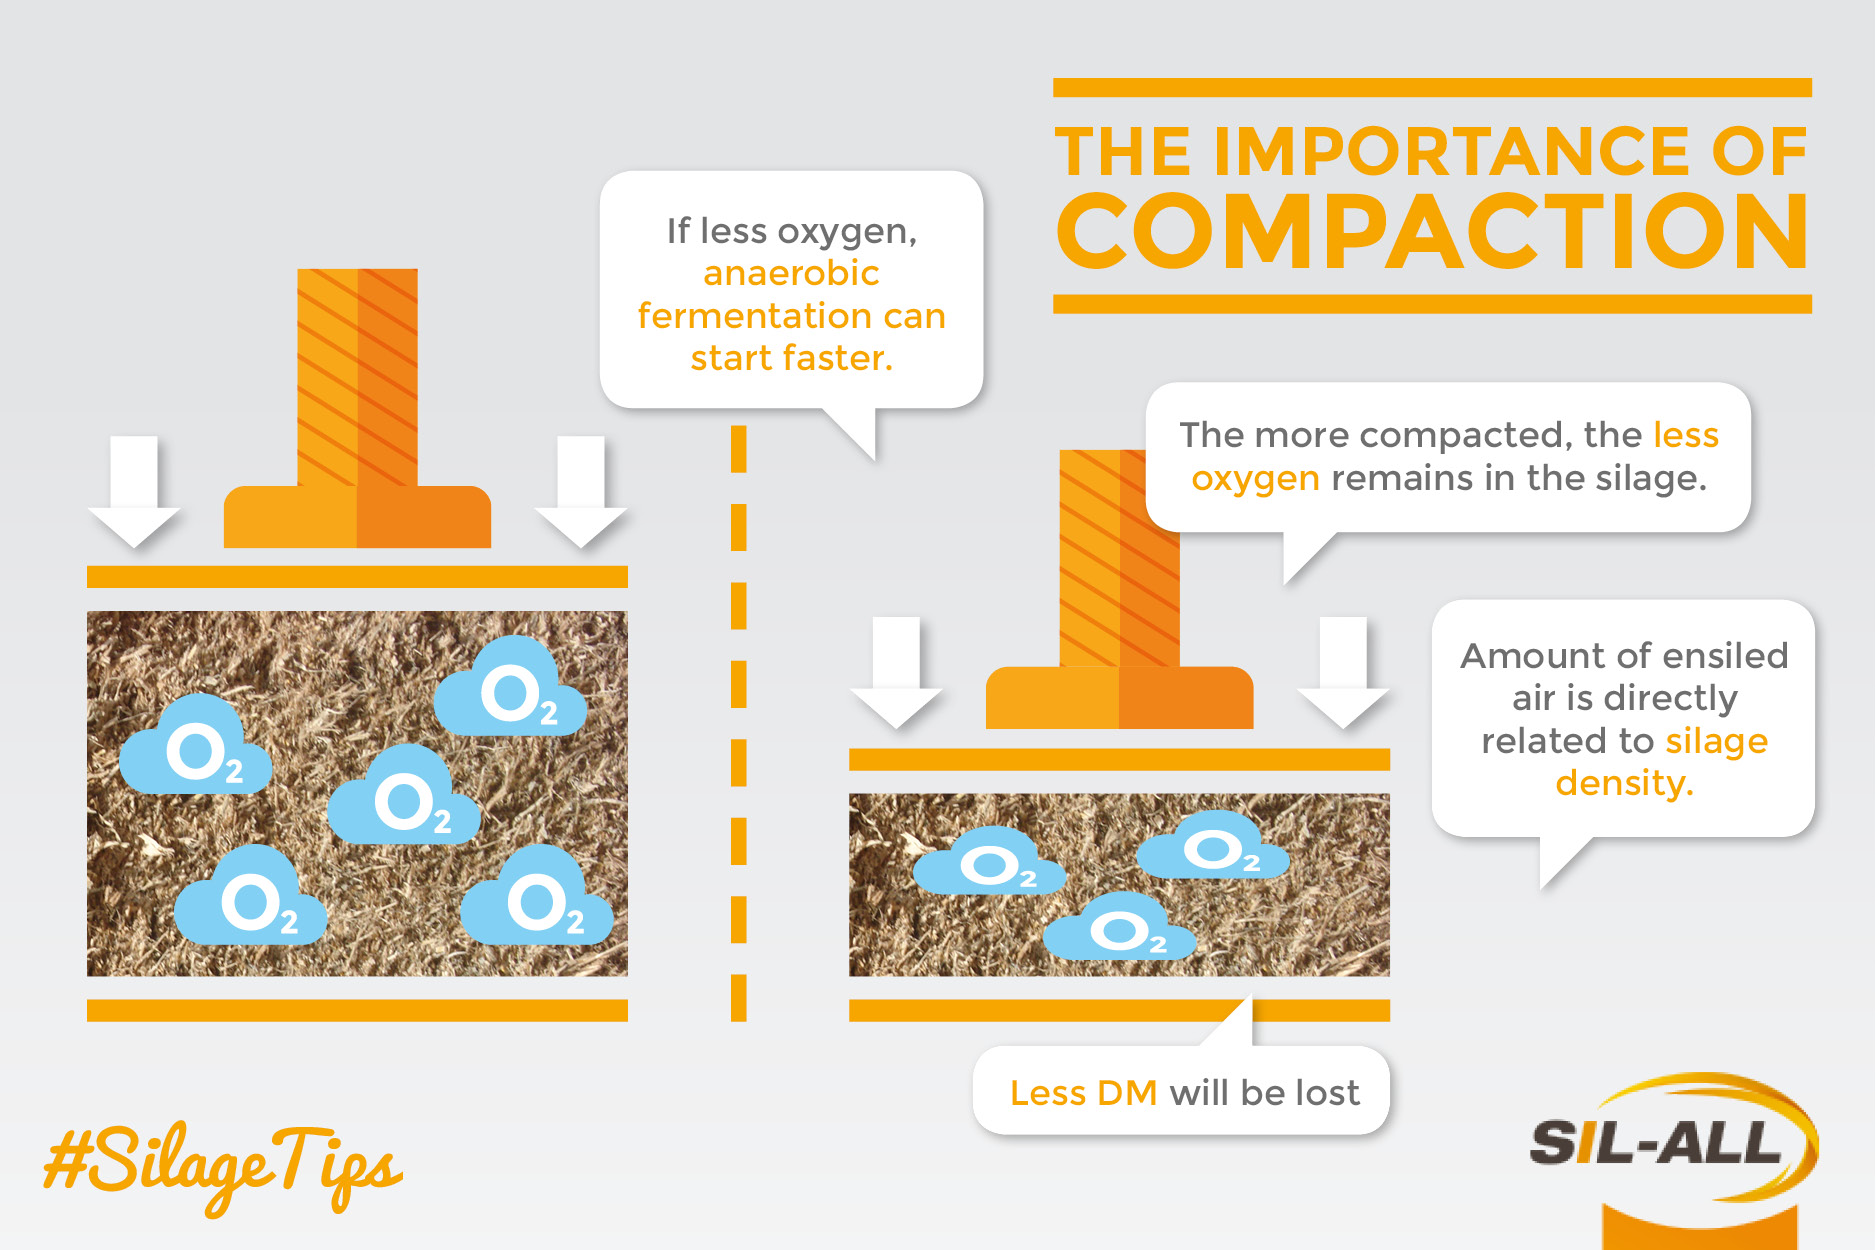 Silage tips: The importance of compaction